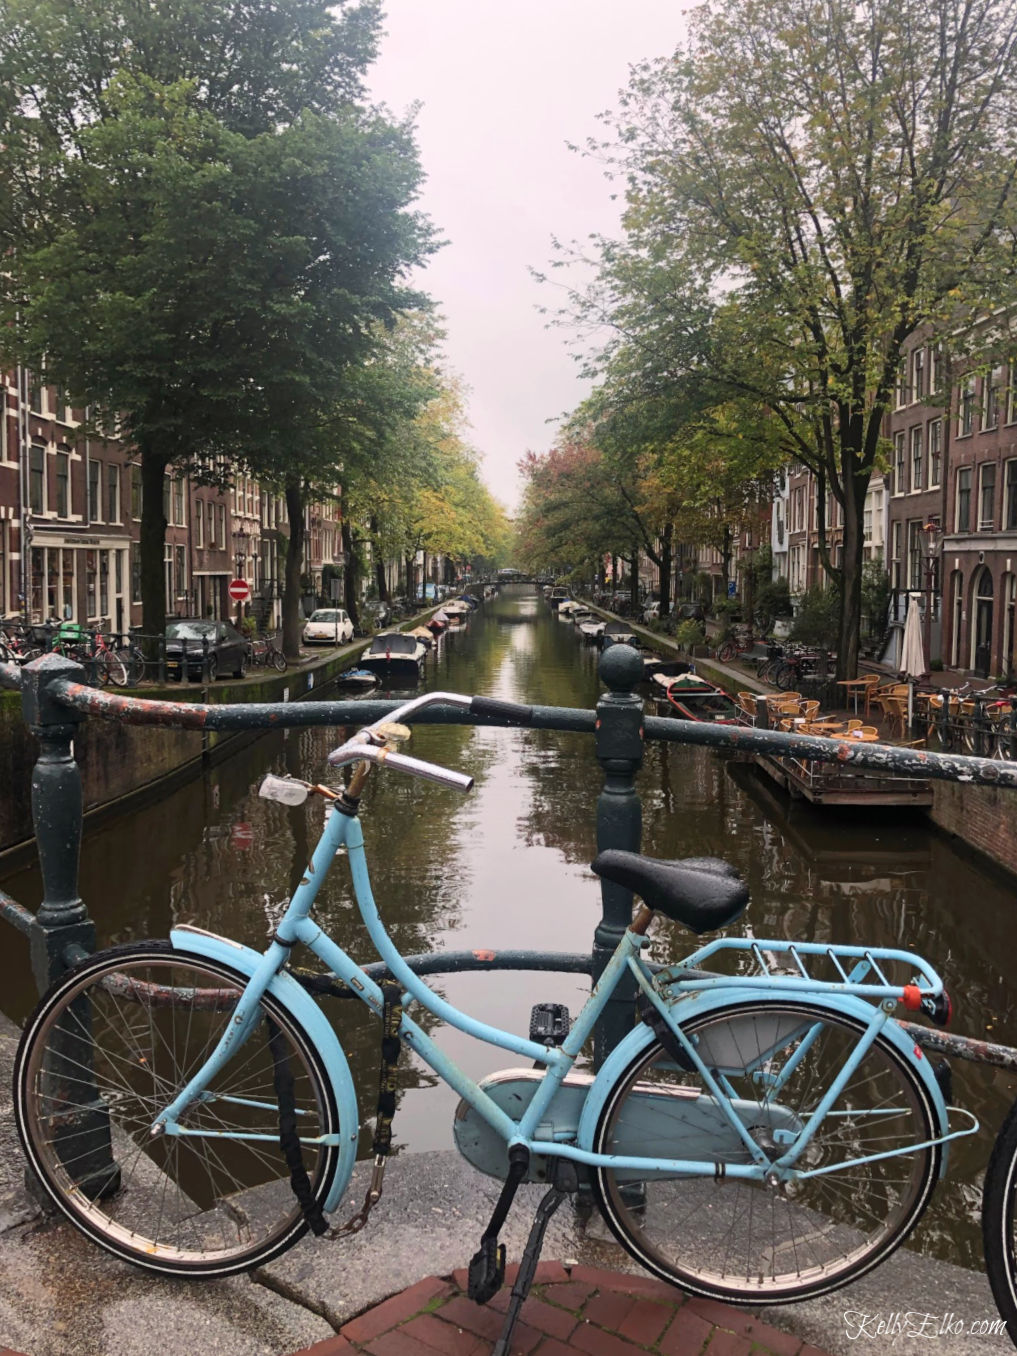 Amsterdam has 165 canals and more bikes than people! kellyelko.com #amsterdam #netherlands #canals #amsterdambike #amsterdamcanal #travel #travelblog #travelblogger #kellyelko